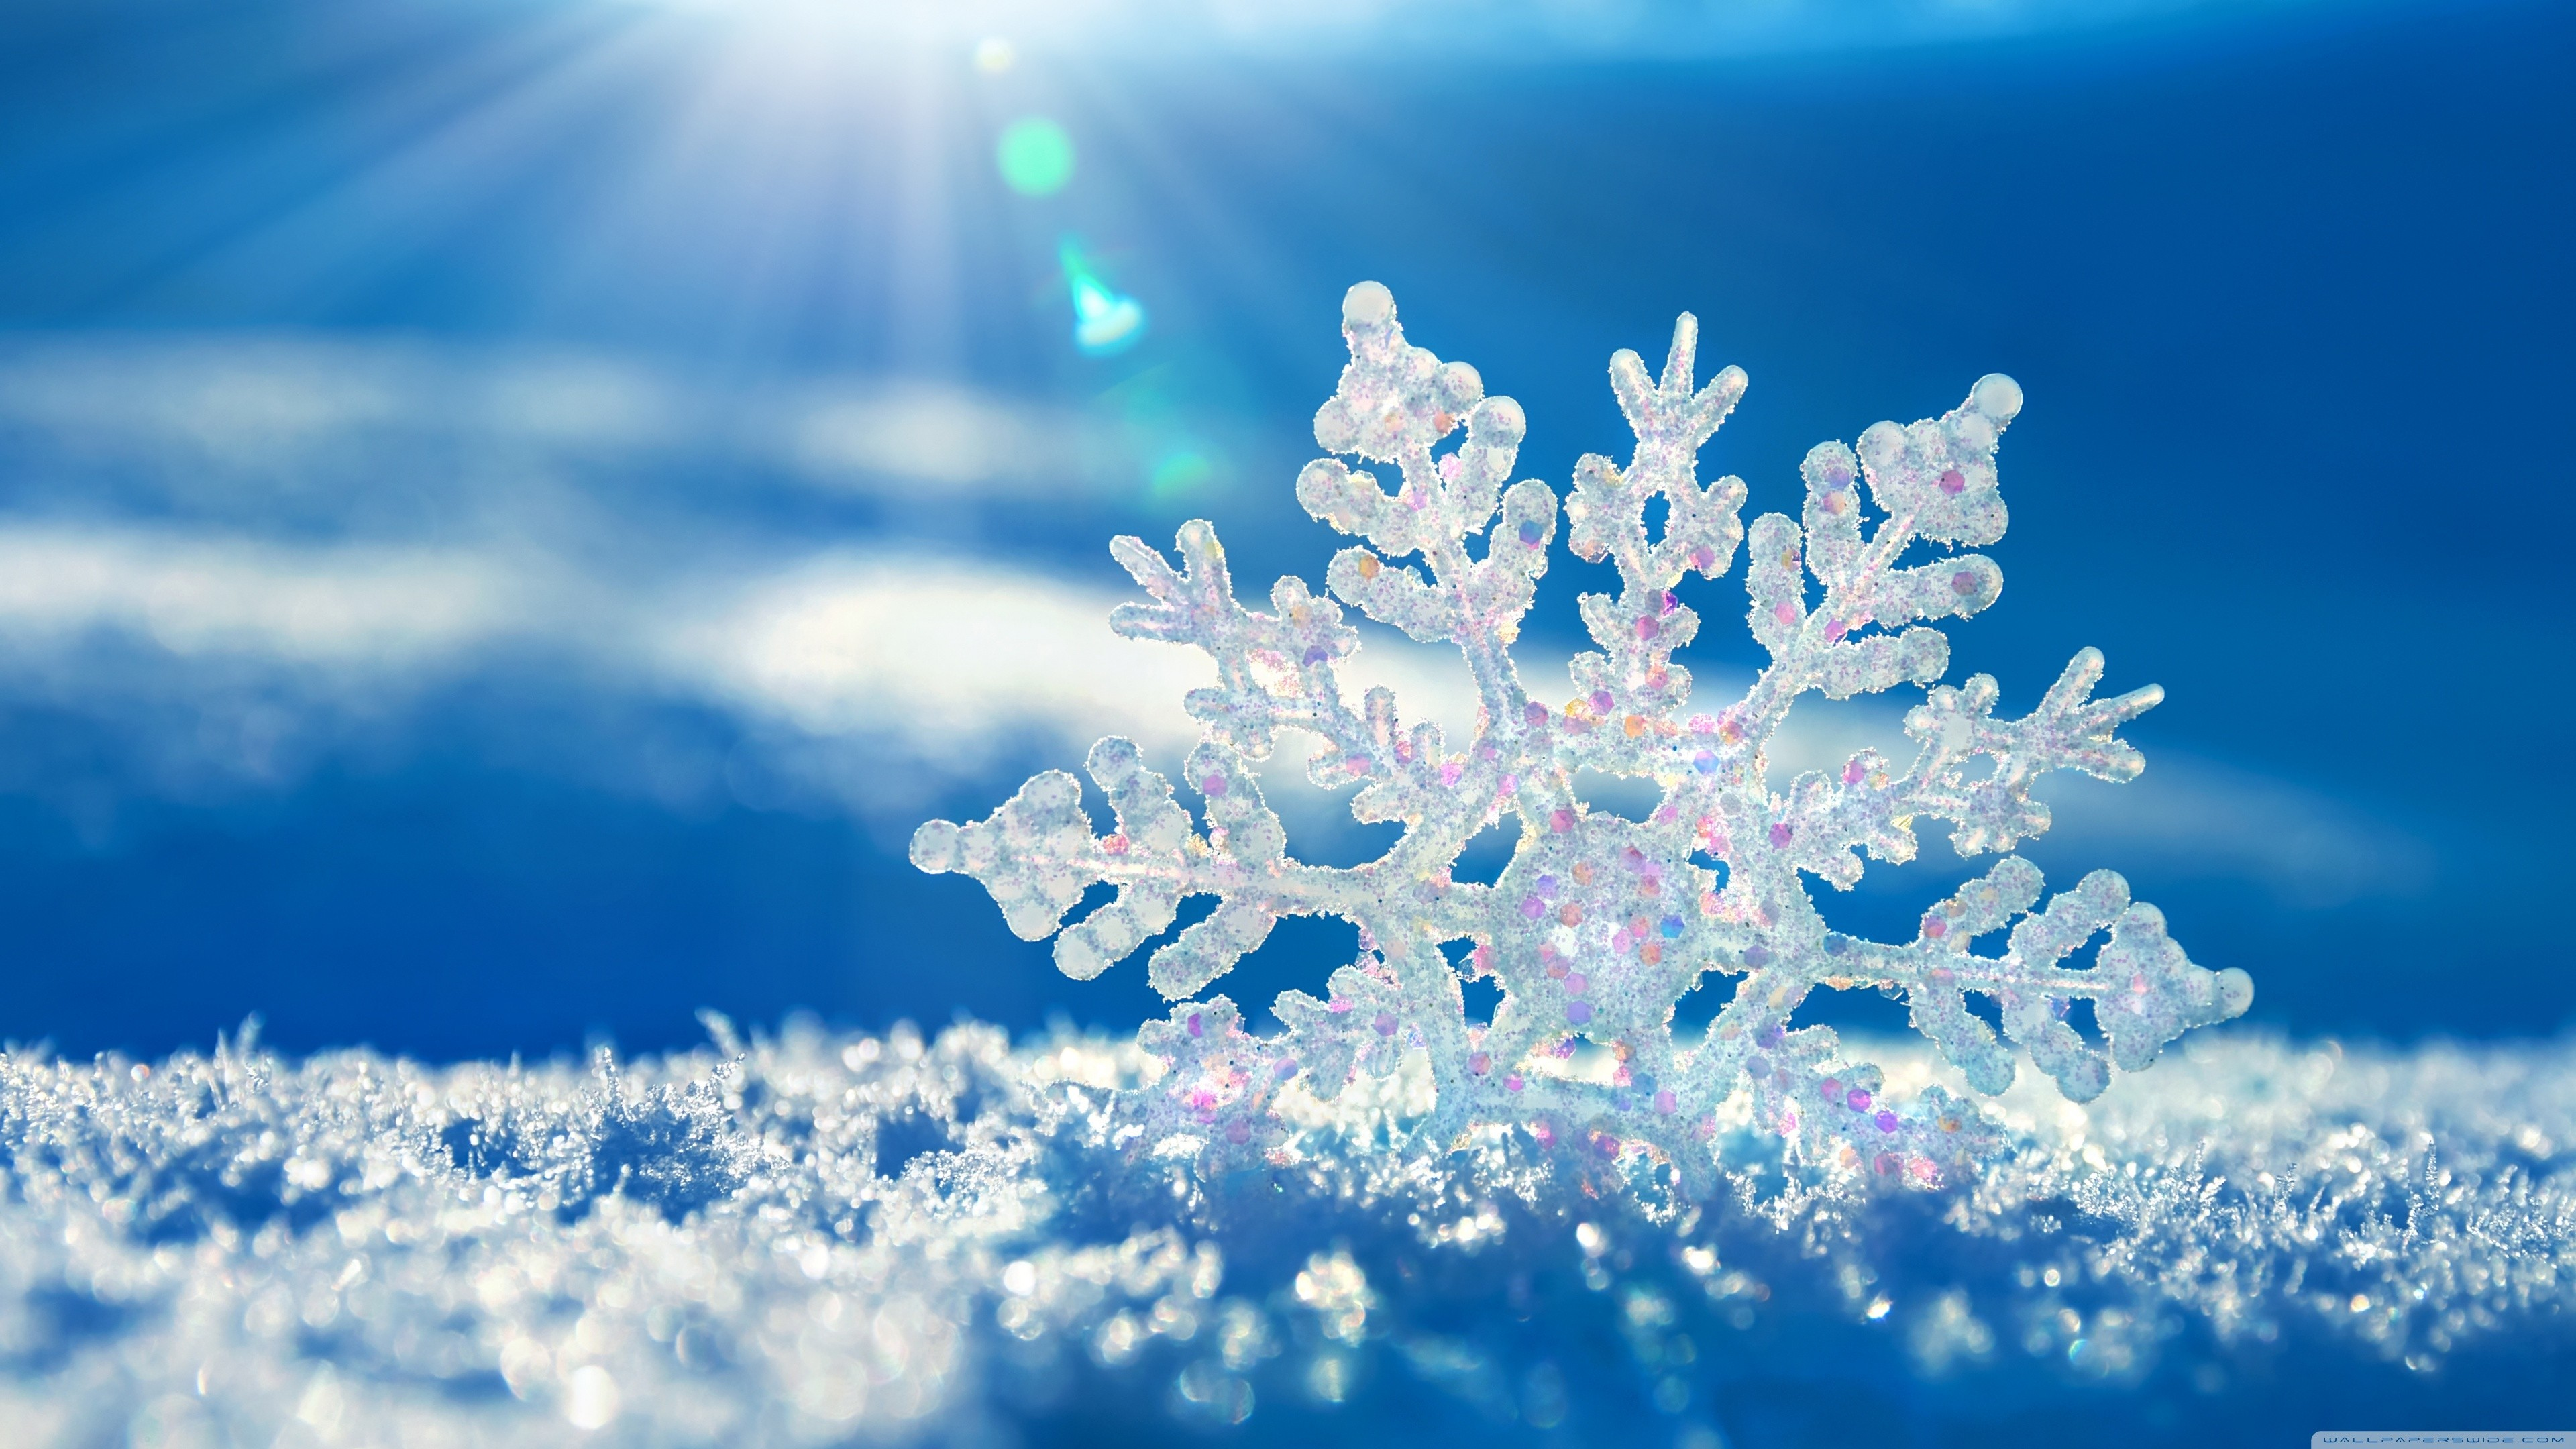 snowflakes background 4k 1540131104 - Snowflakes Background 4k - winter wallpapers, snow wallpapers, nature wallpapers, landscape wallpapers, background wallpapers